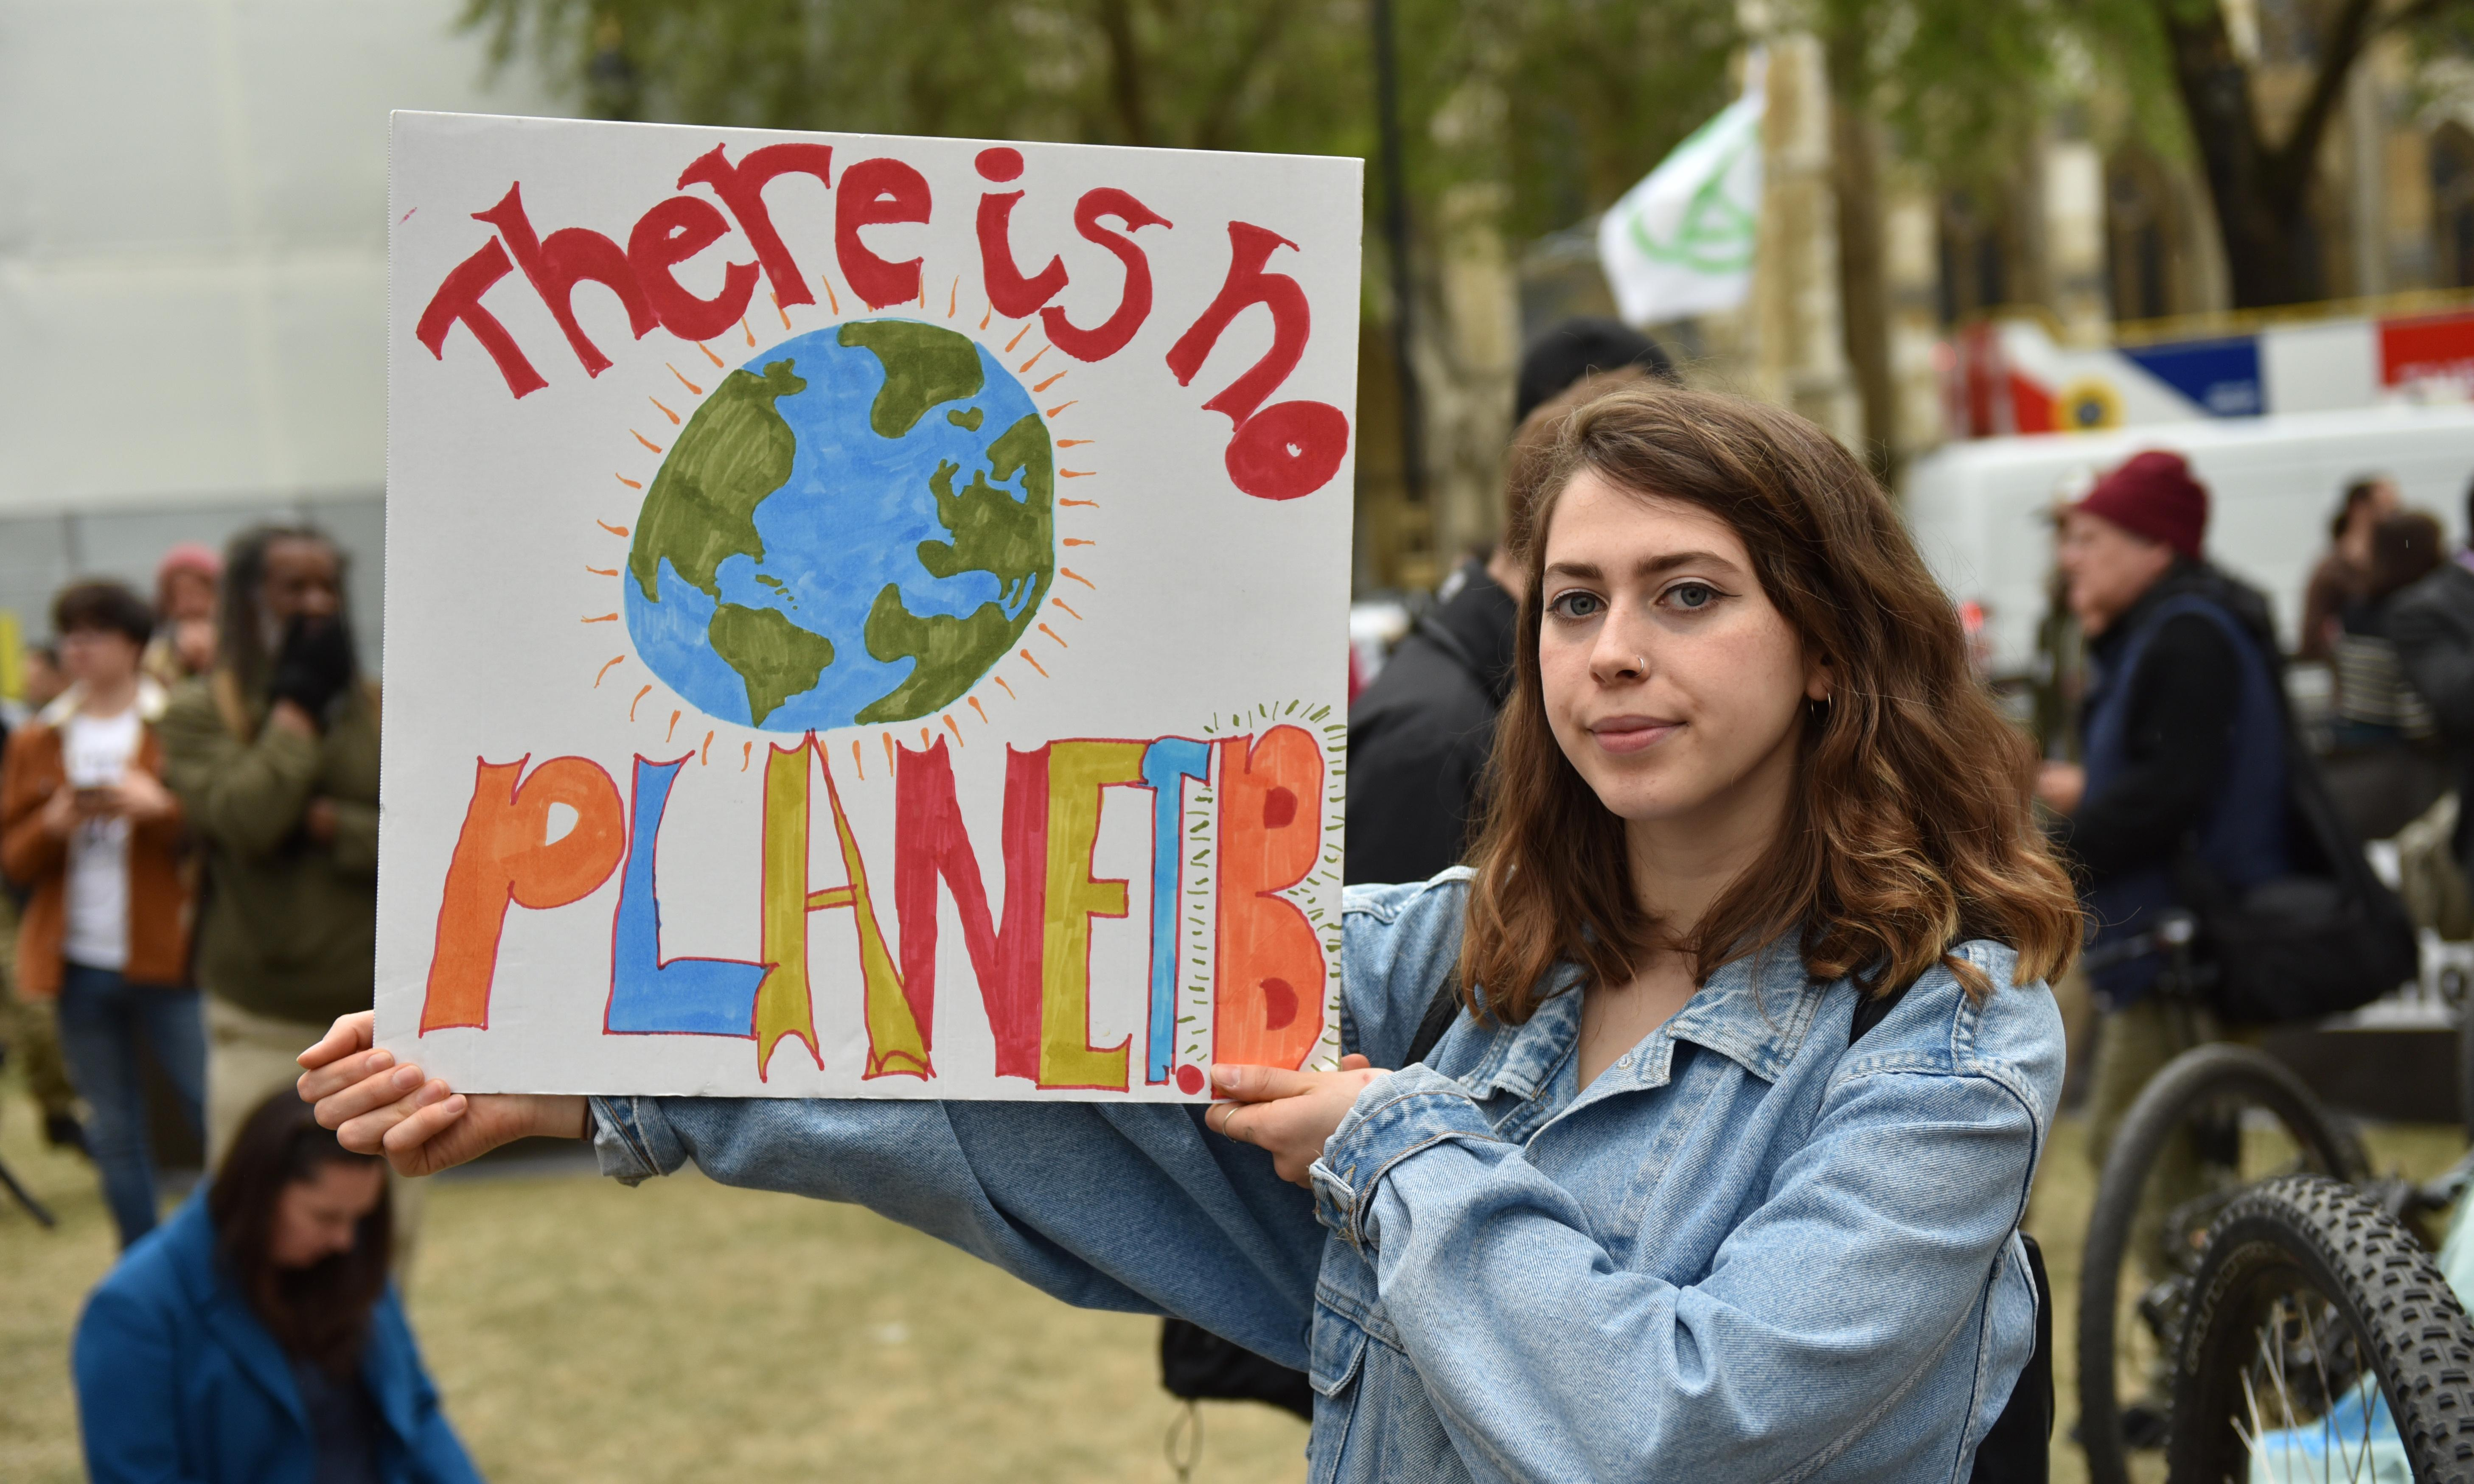 The Guardian view on net-zero carbon emissions: sooner is better